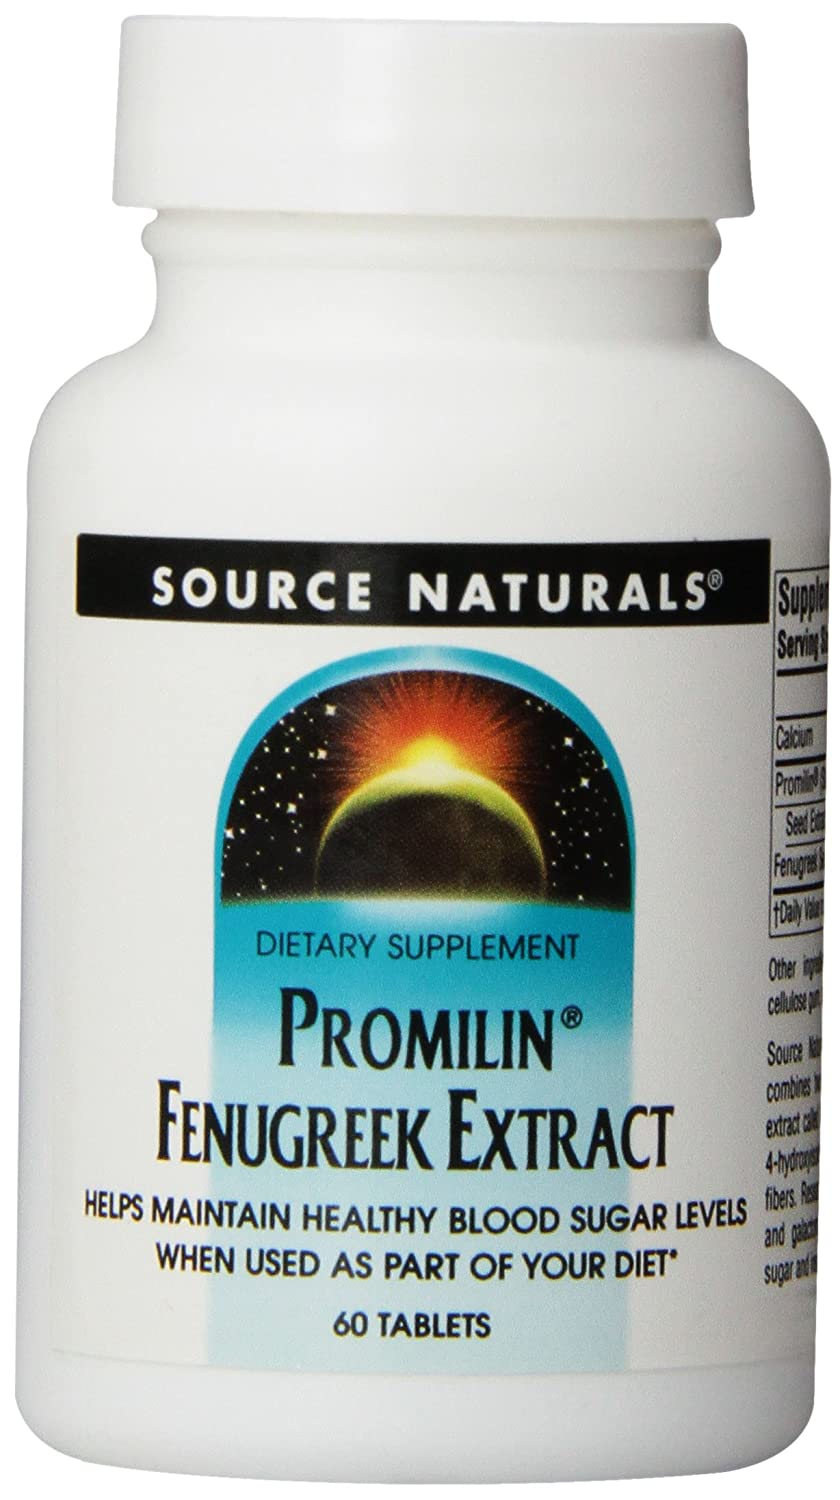 Source Naturals Promilin Fenugreek Extract 500mg, Supports Healthy Blood Sugar Levels, 60 Tablets